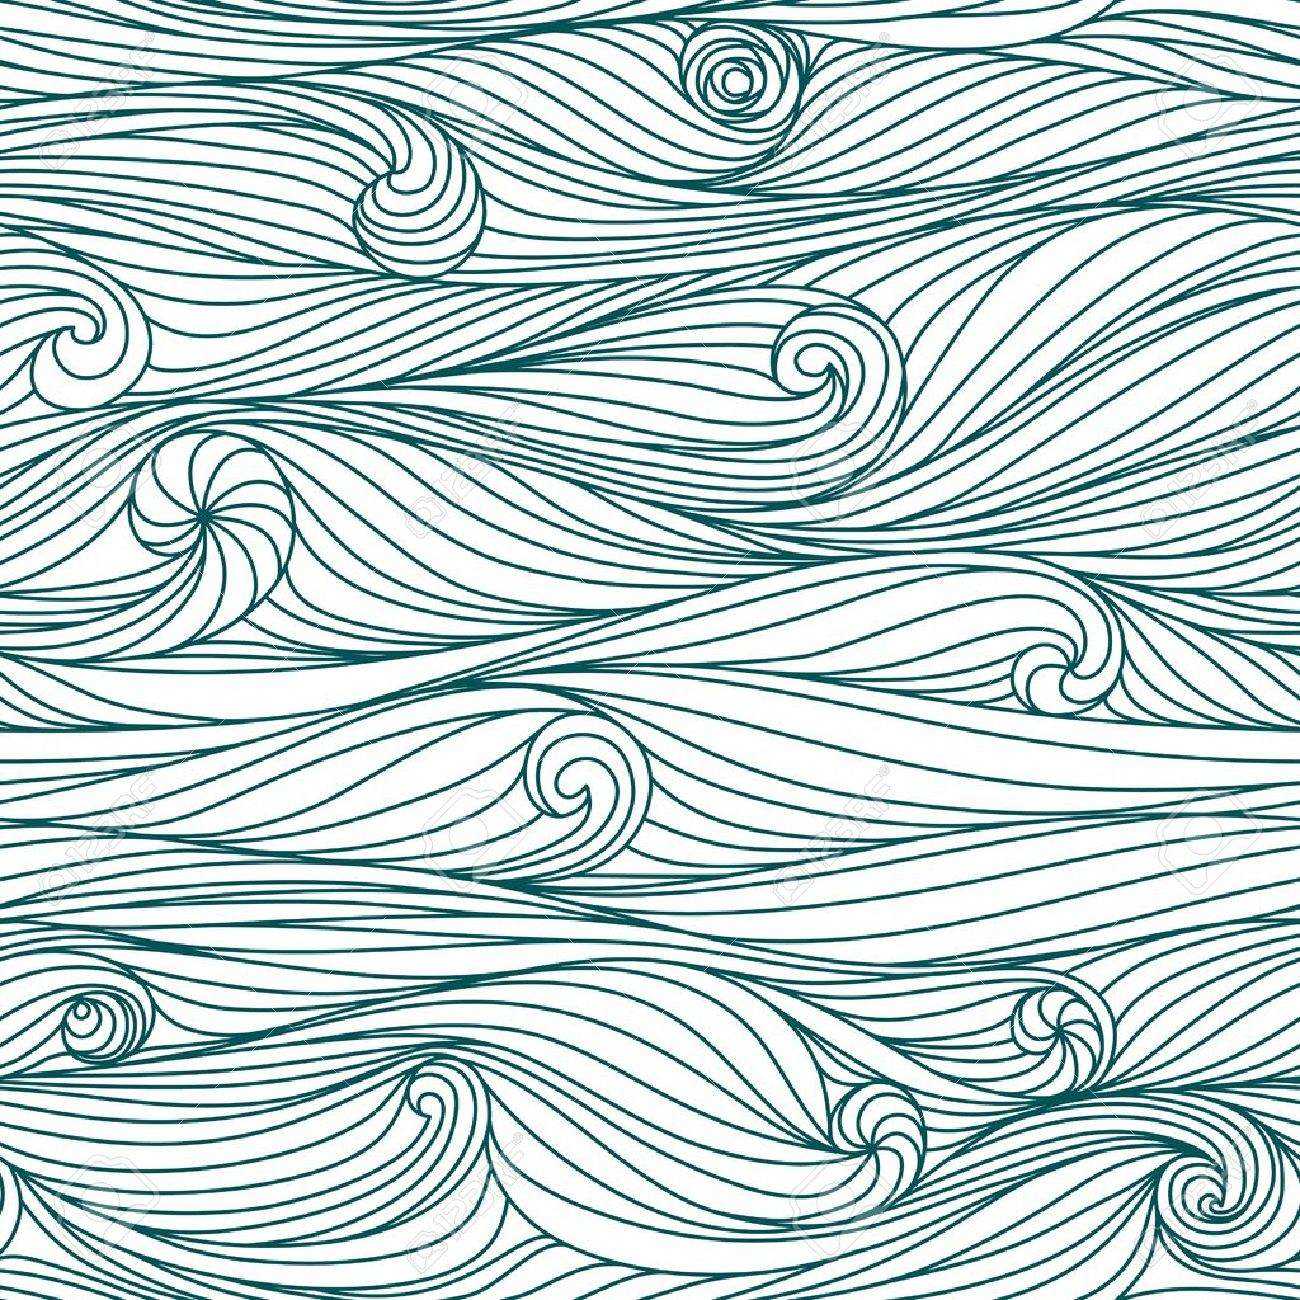 Abstract blue hand-drawn pattern, waves background. Seamless pattern can be used for wallpaper, pattern fills, web page background, surface textures. Stock Vector - 14719538